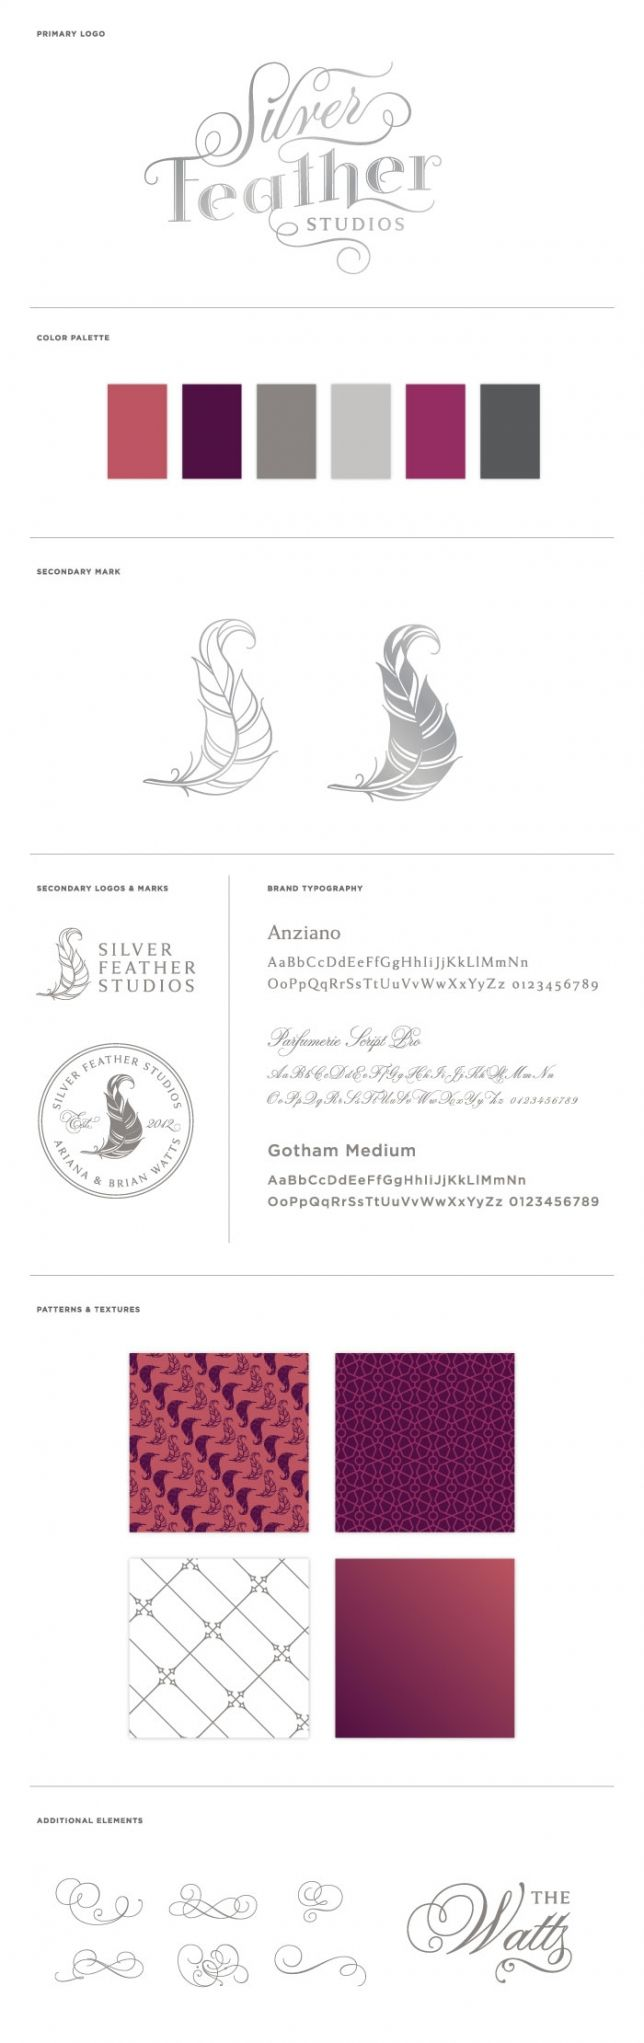 Naming, Brand Development and Identity Design for Silver Feather Studios in North Carolina by Braizen